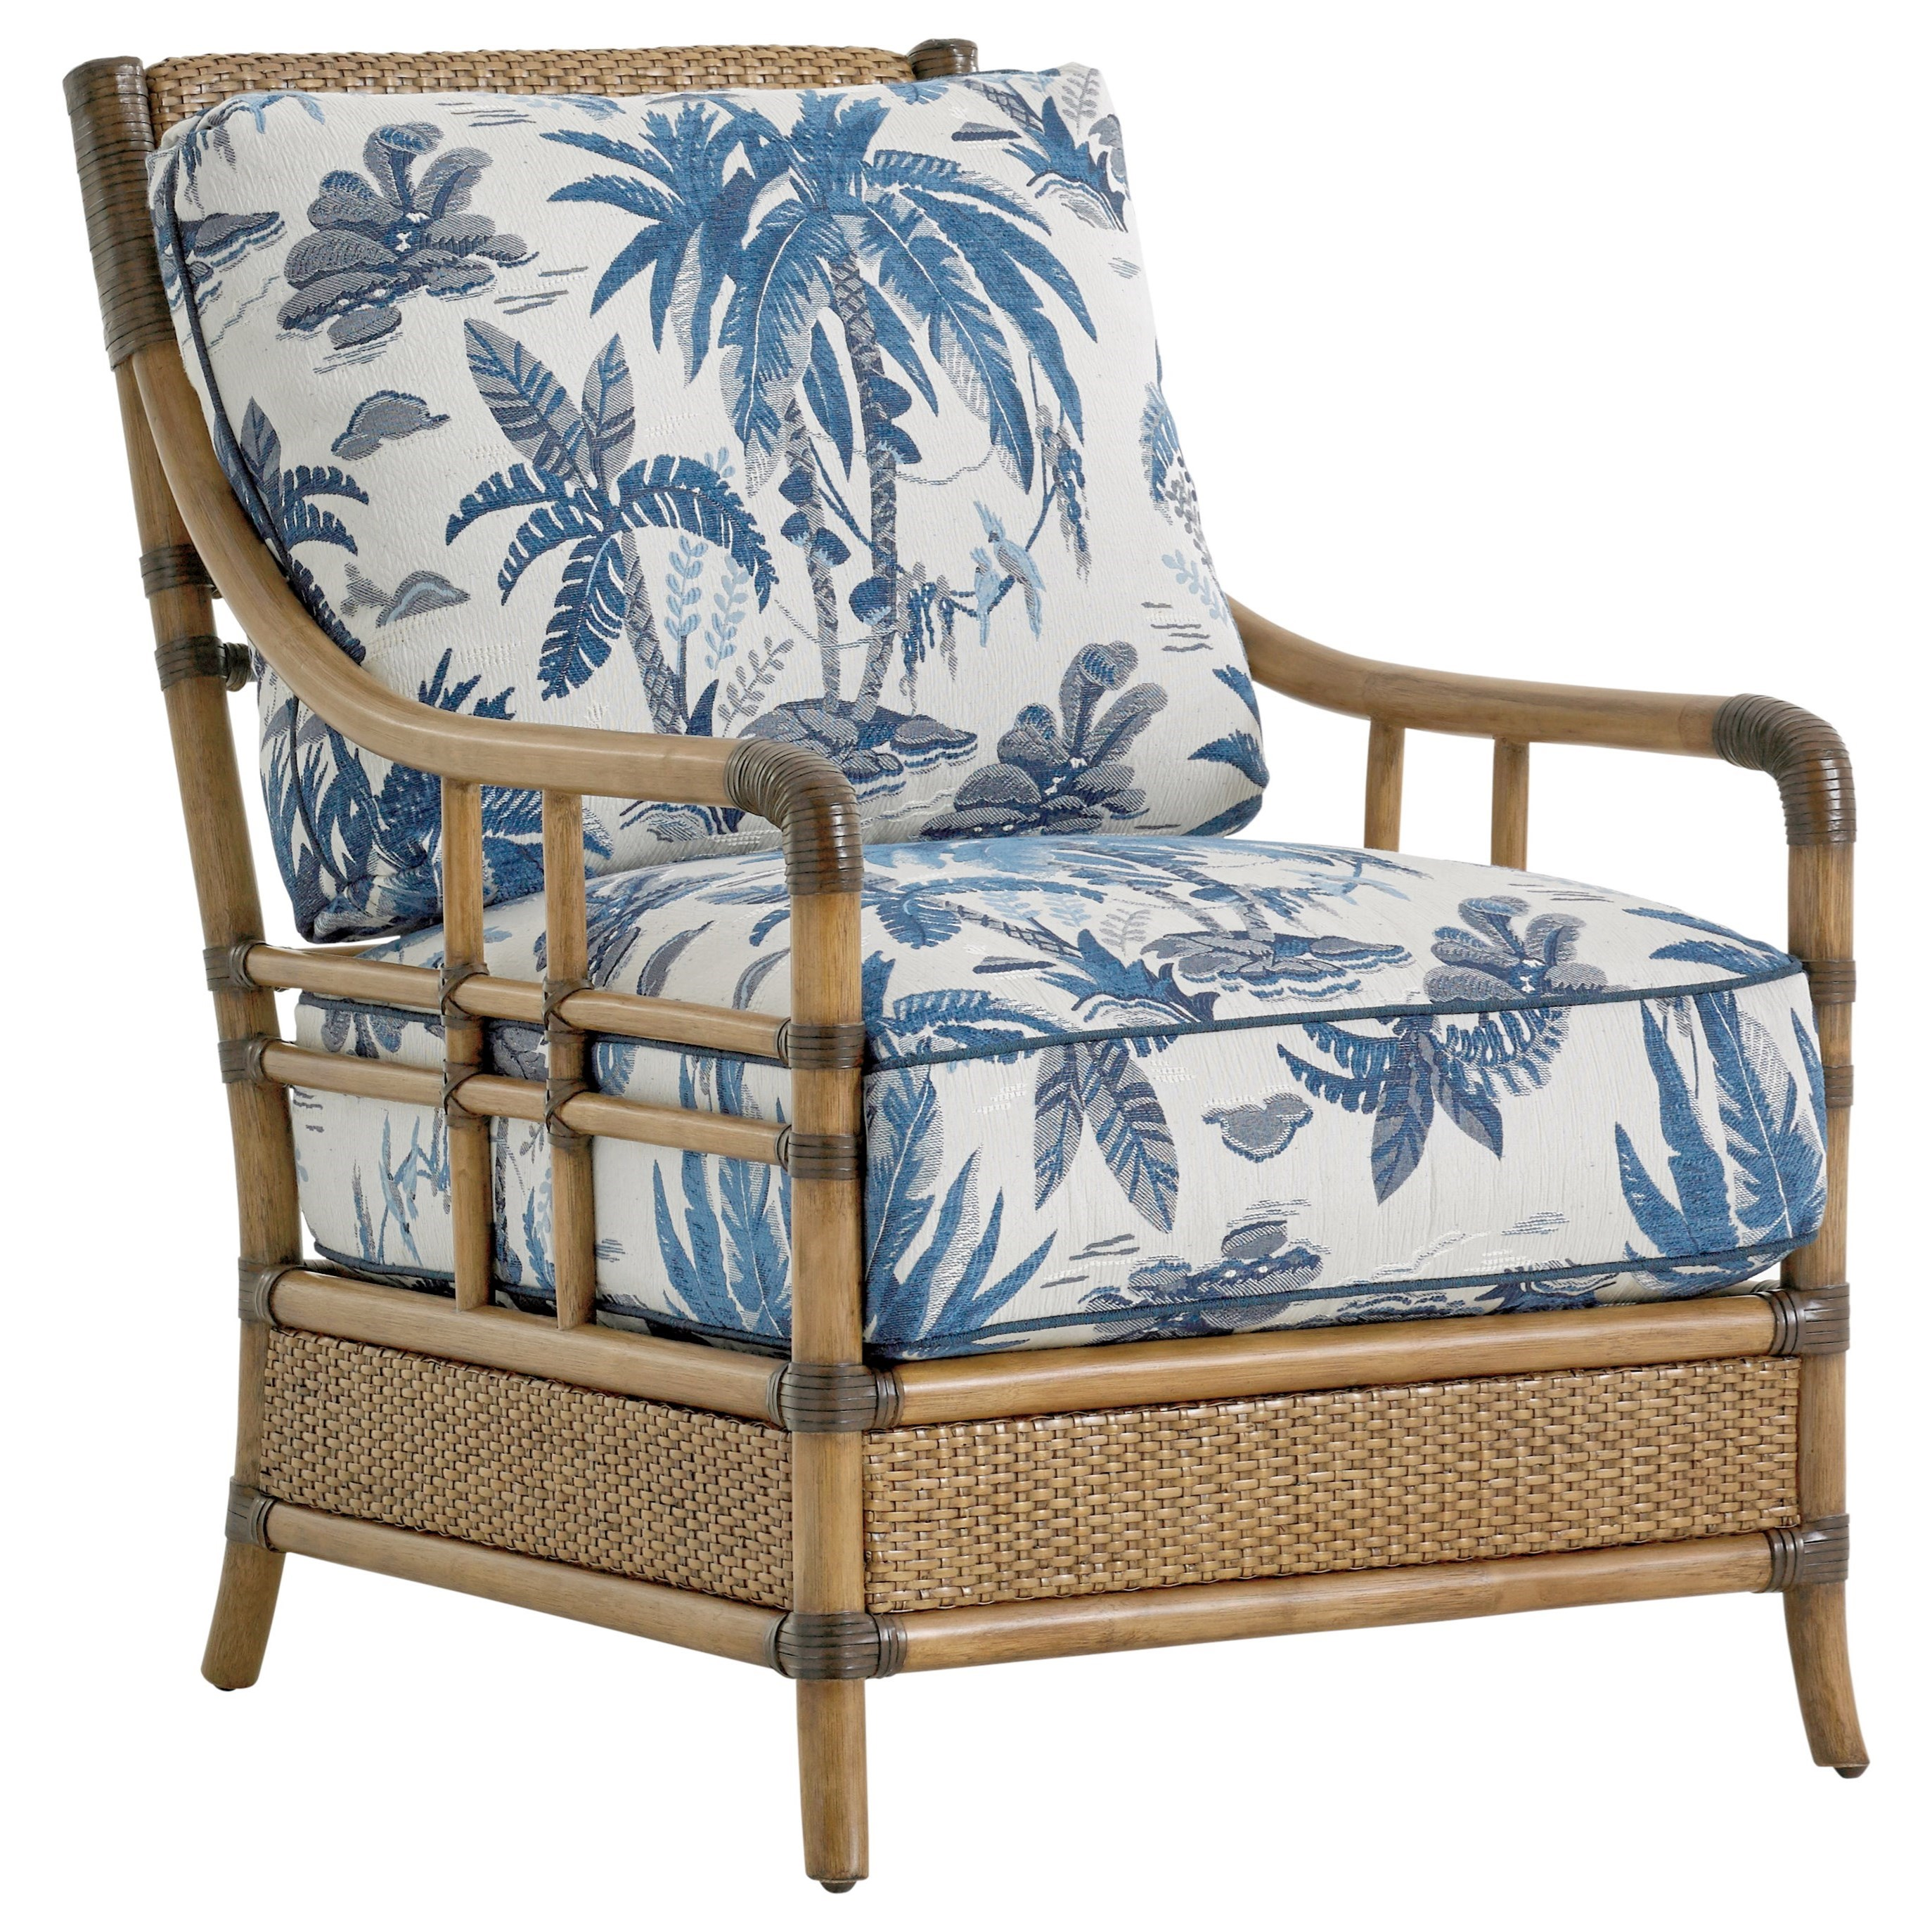 Tommy Bahama Home Twin Palms Seagate Chair - Item Number: 1845-11-6378-31